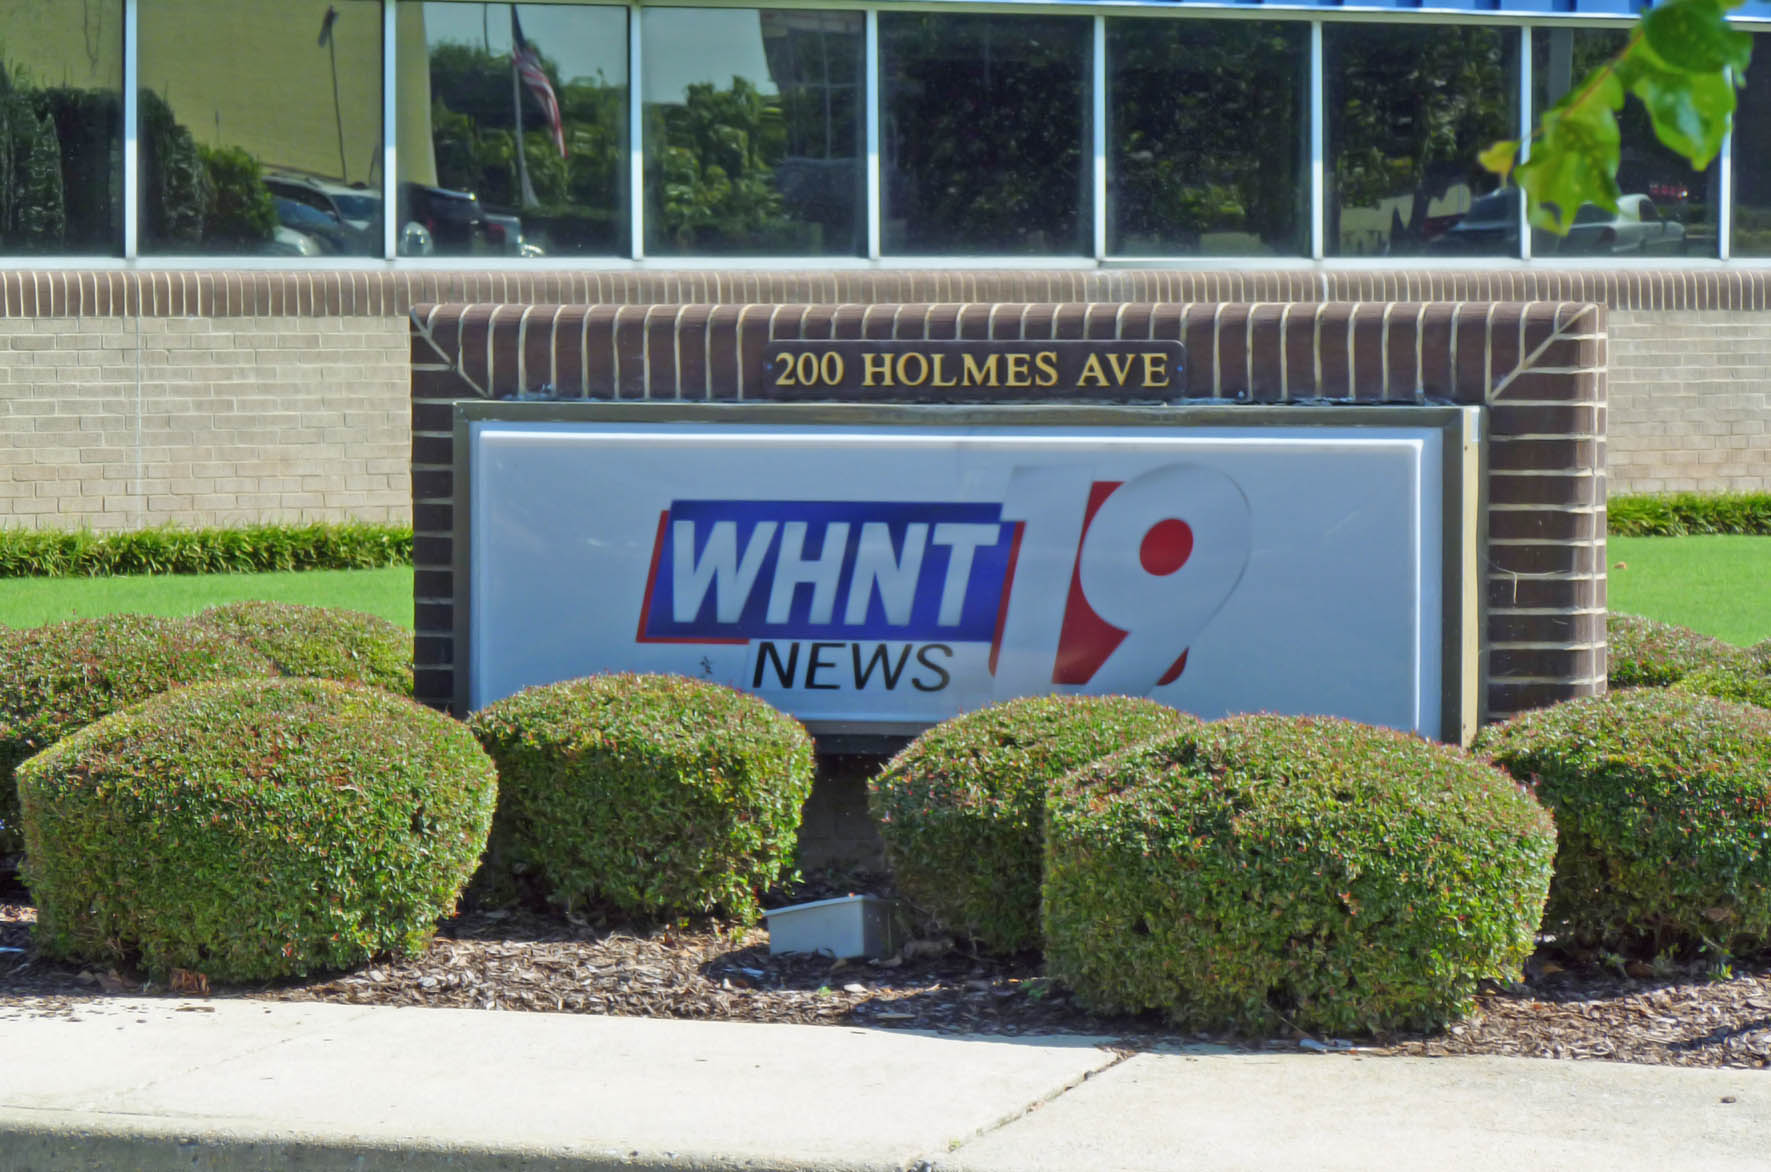 WHNT 19 News building location